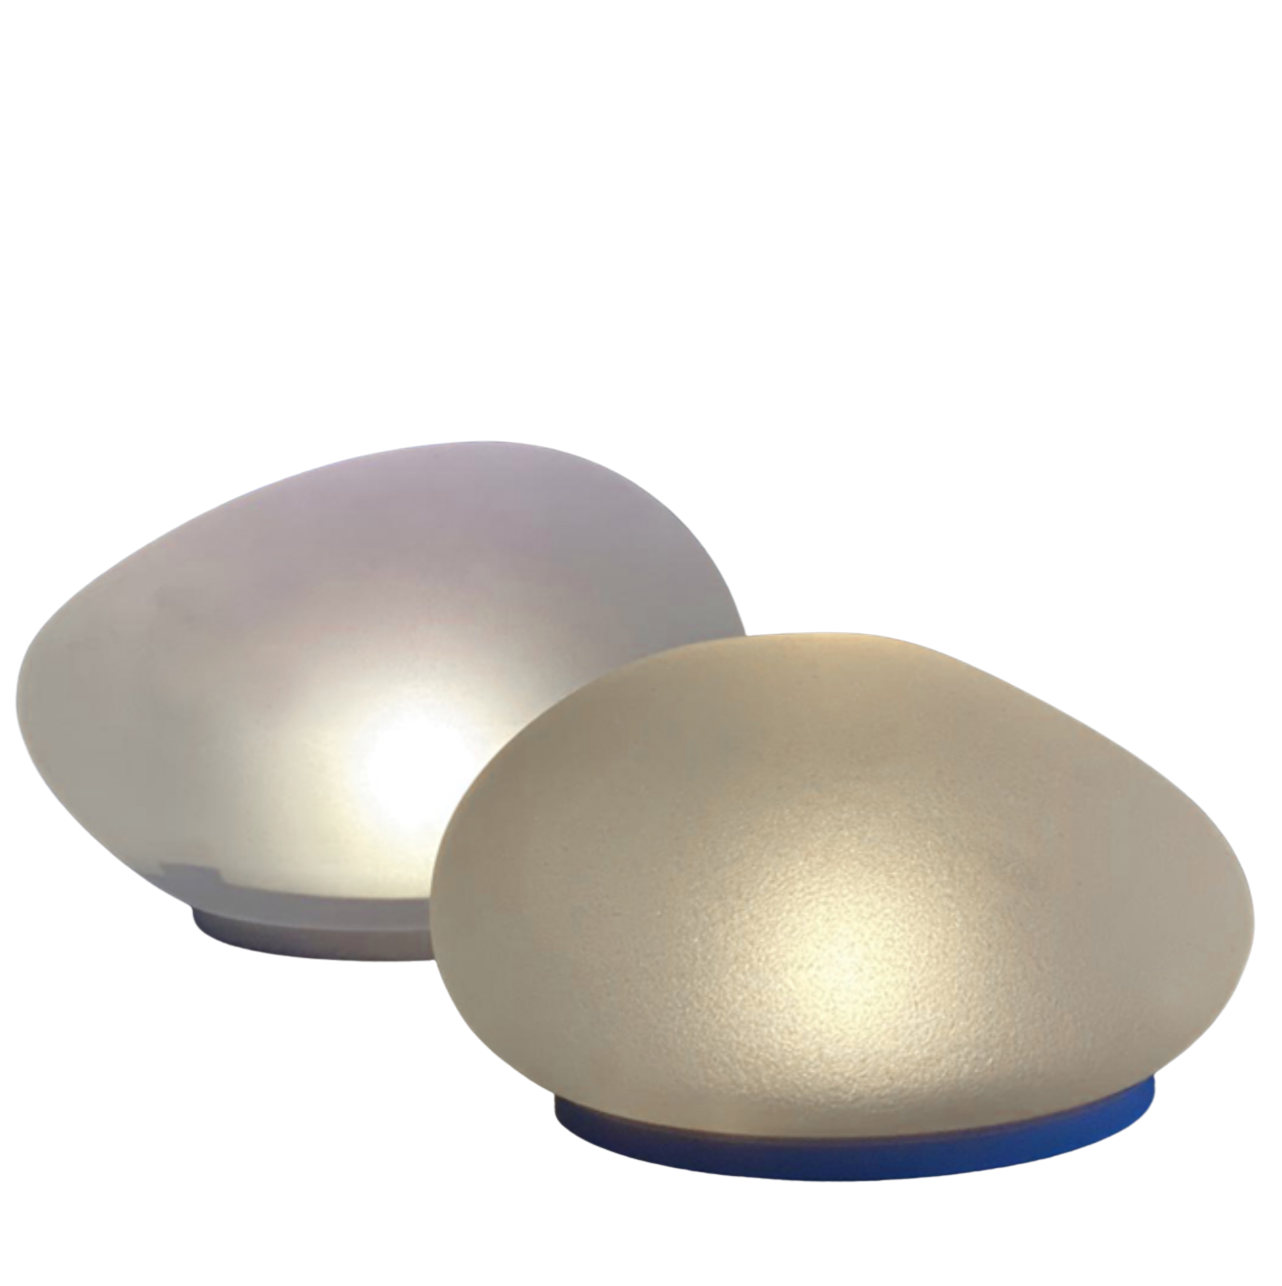 Lightstyle London Solar Powered Glass Pebble - Large